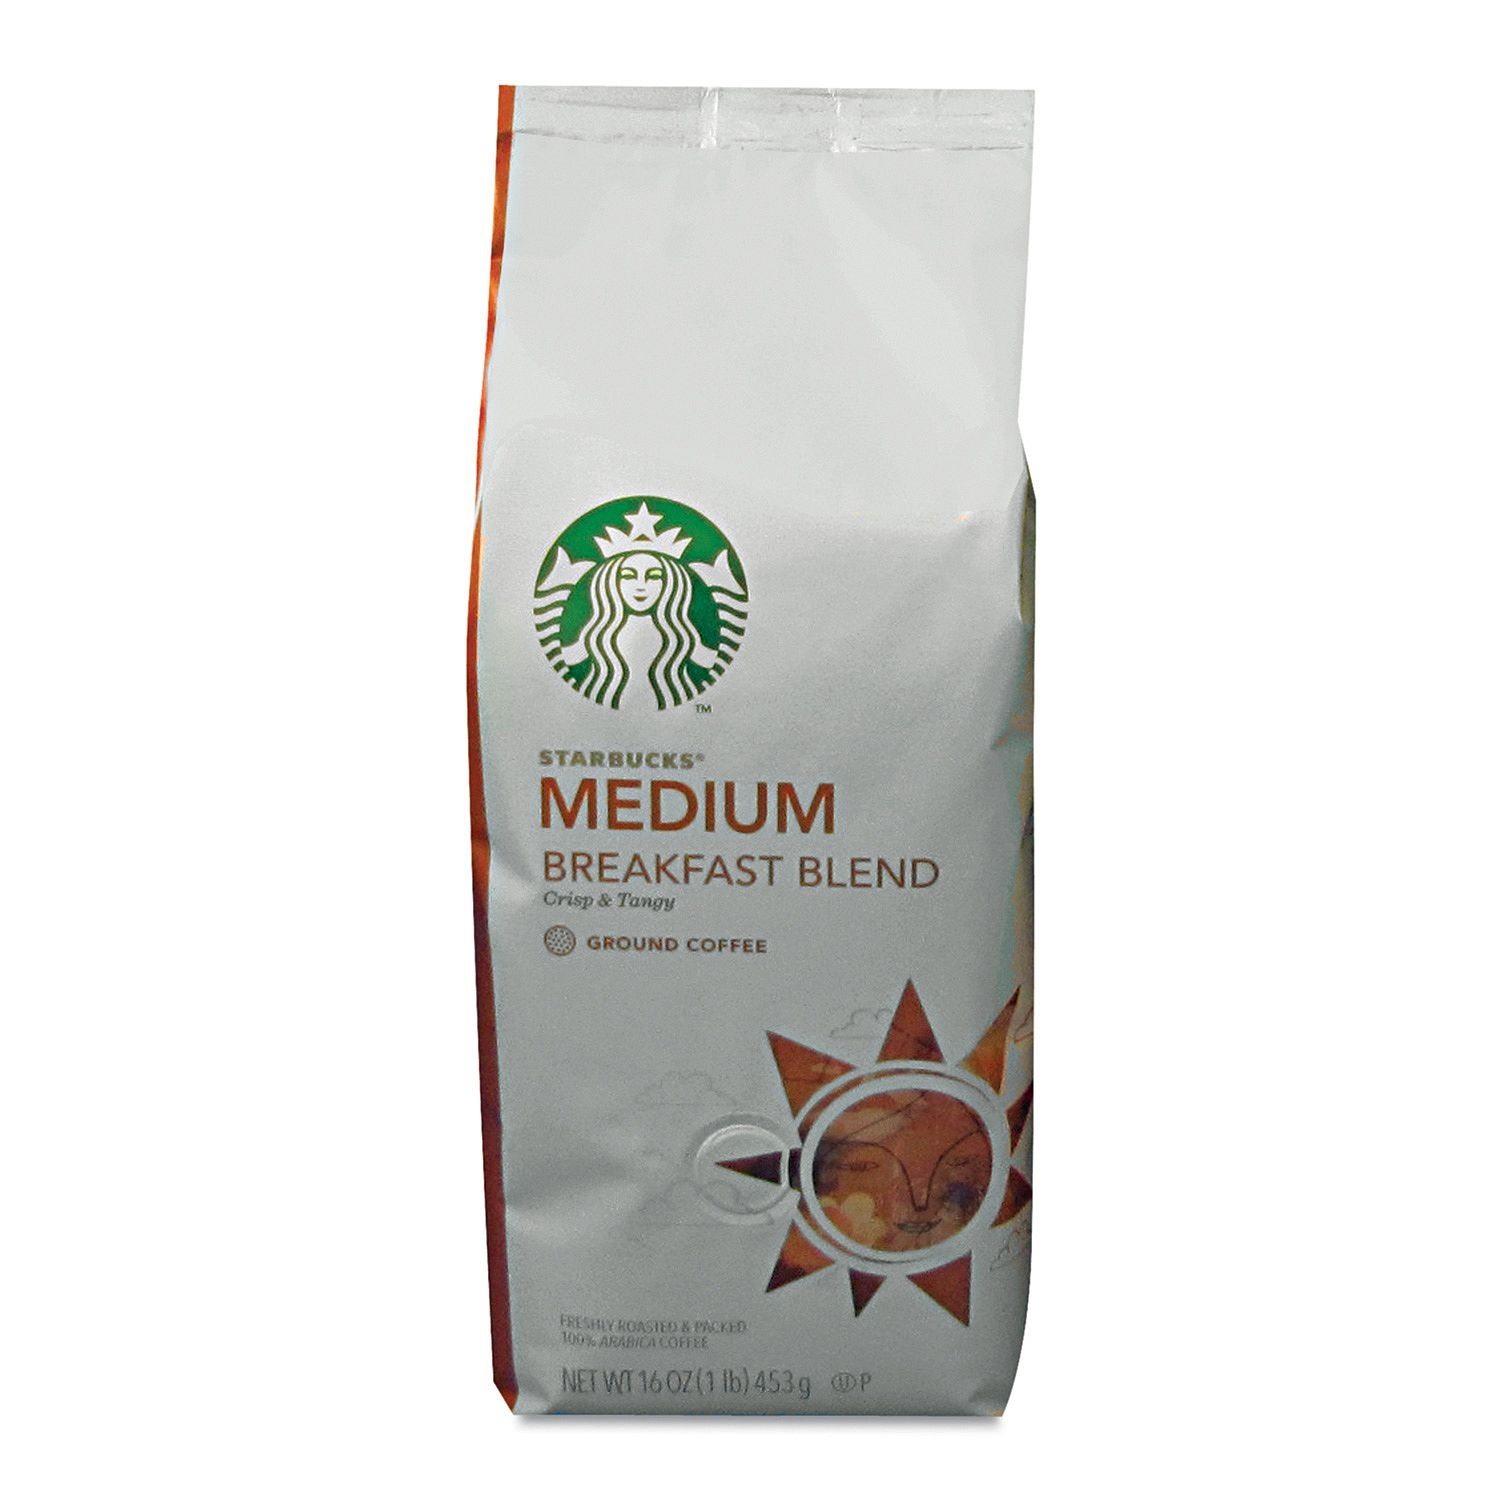 Starbucks Breakfast Blend Ground Coffee (1 lb. bag)